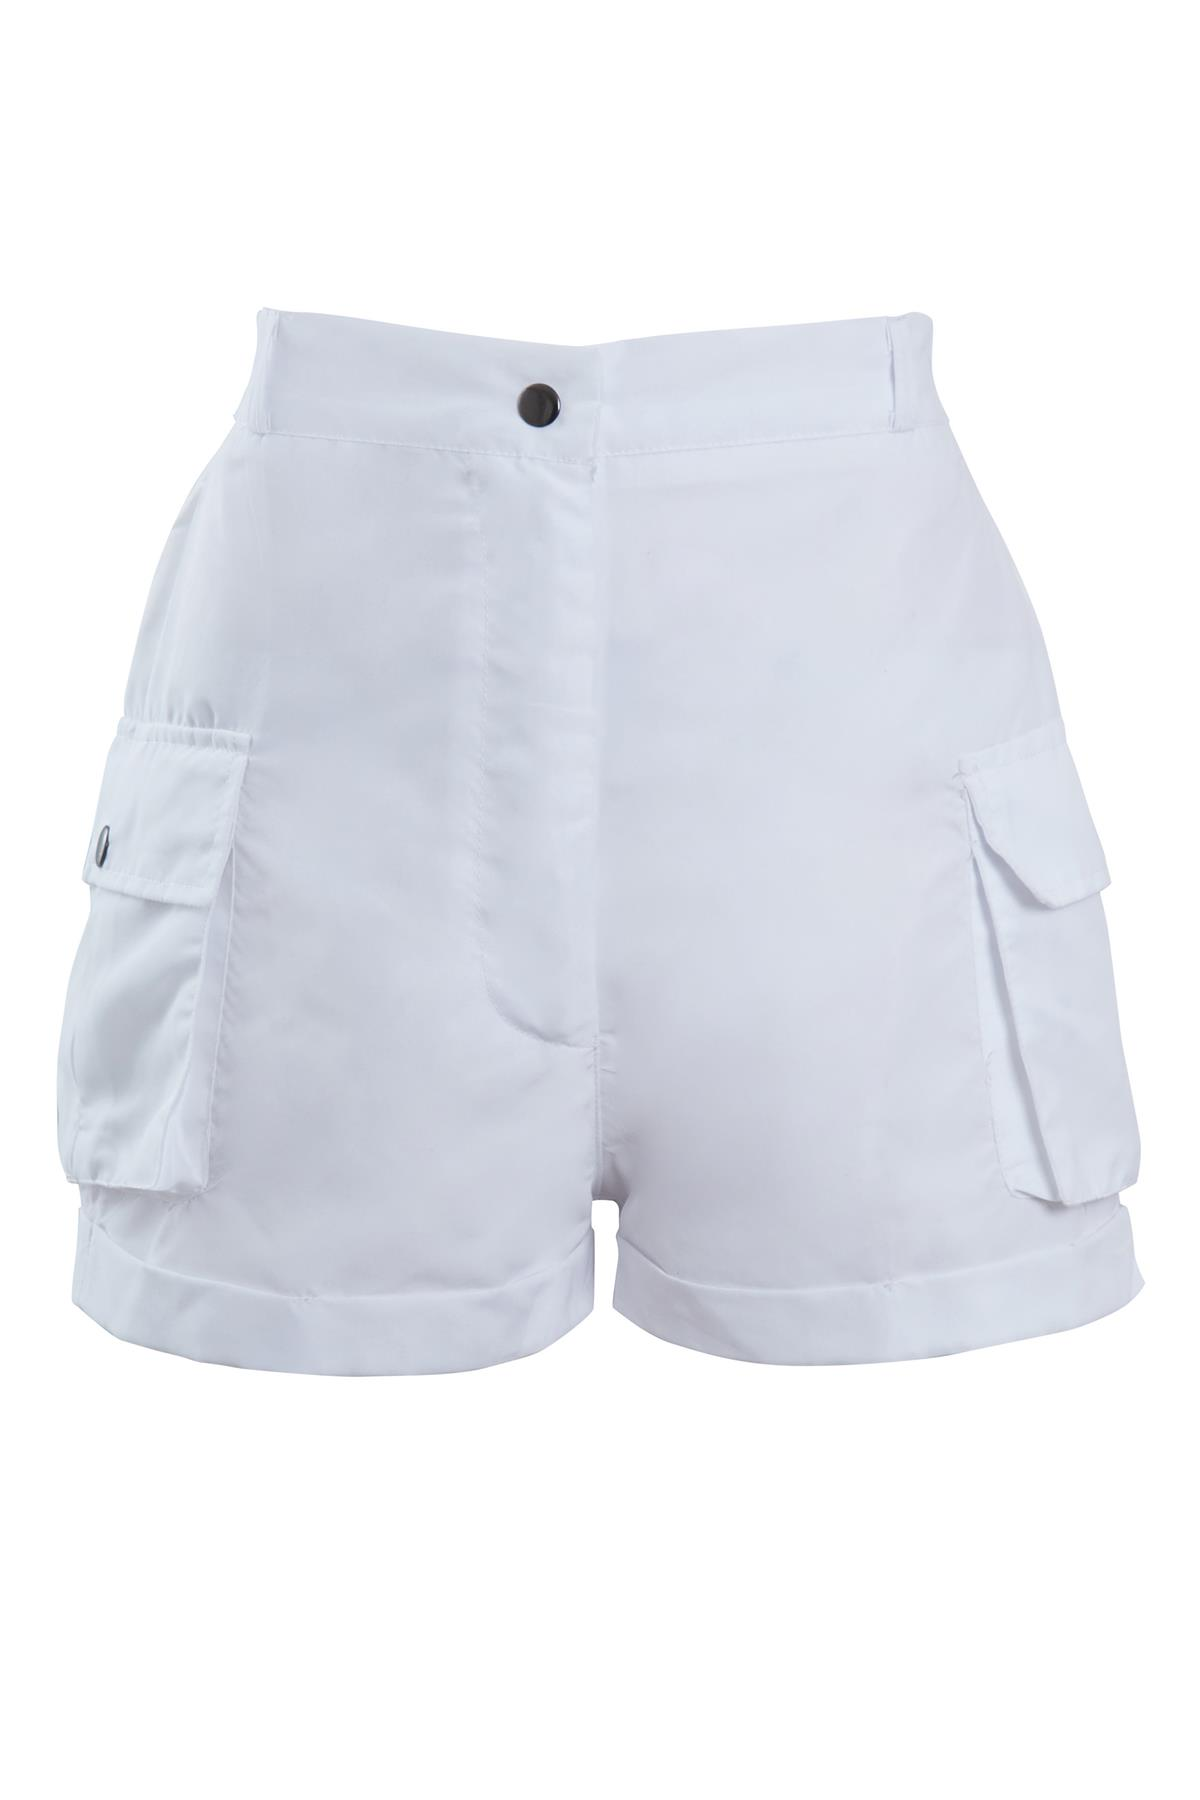 Shelikes-Womens-Cargo-Crop-Top-Shorts-Co-ord-Festival-Tie-Front-Pocket-Set thumbnail 30